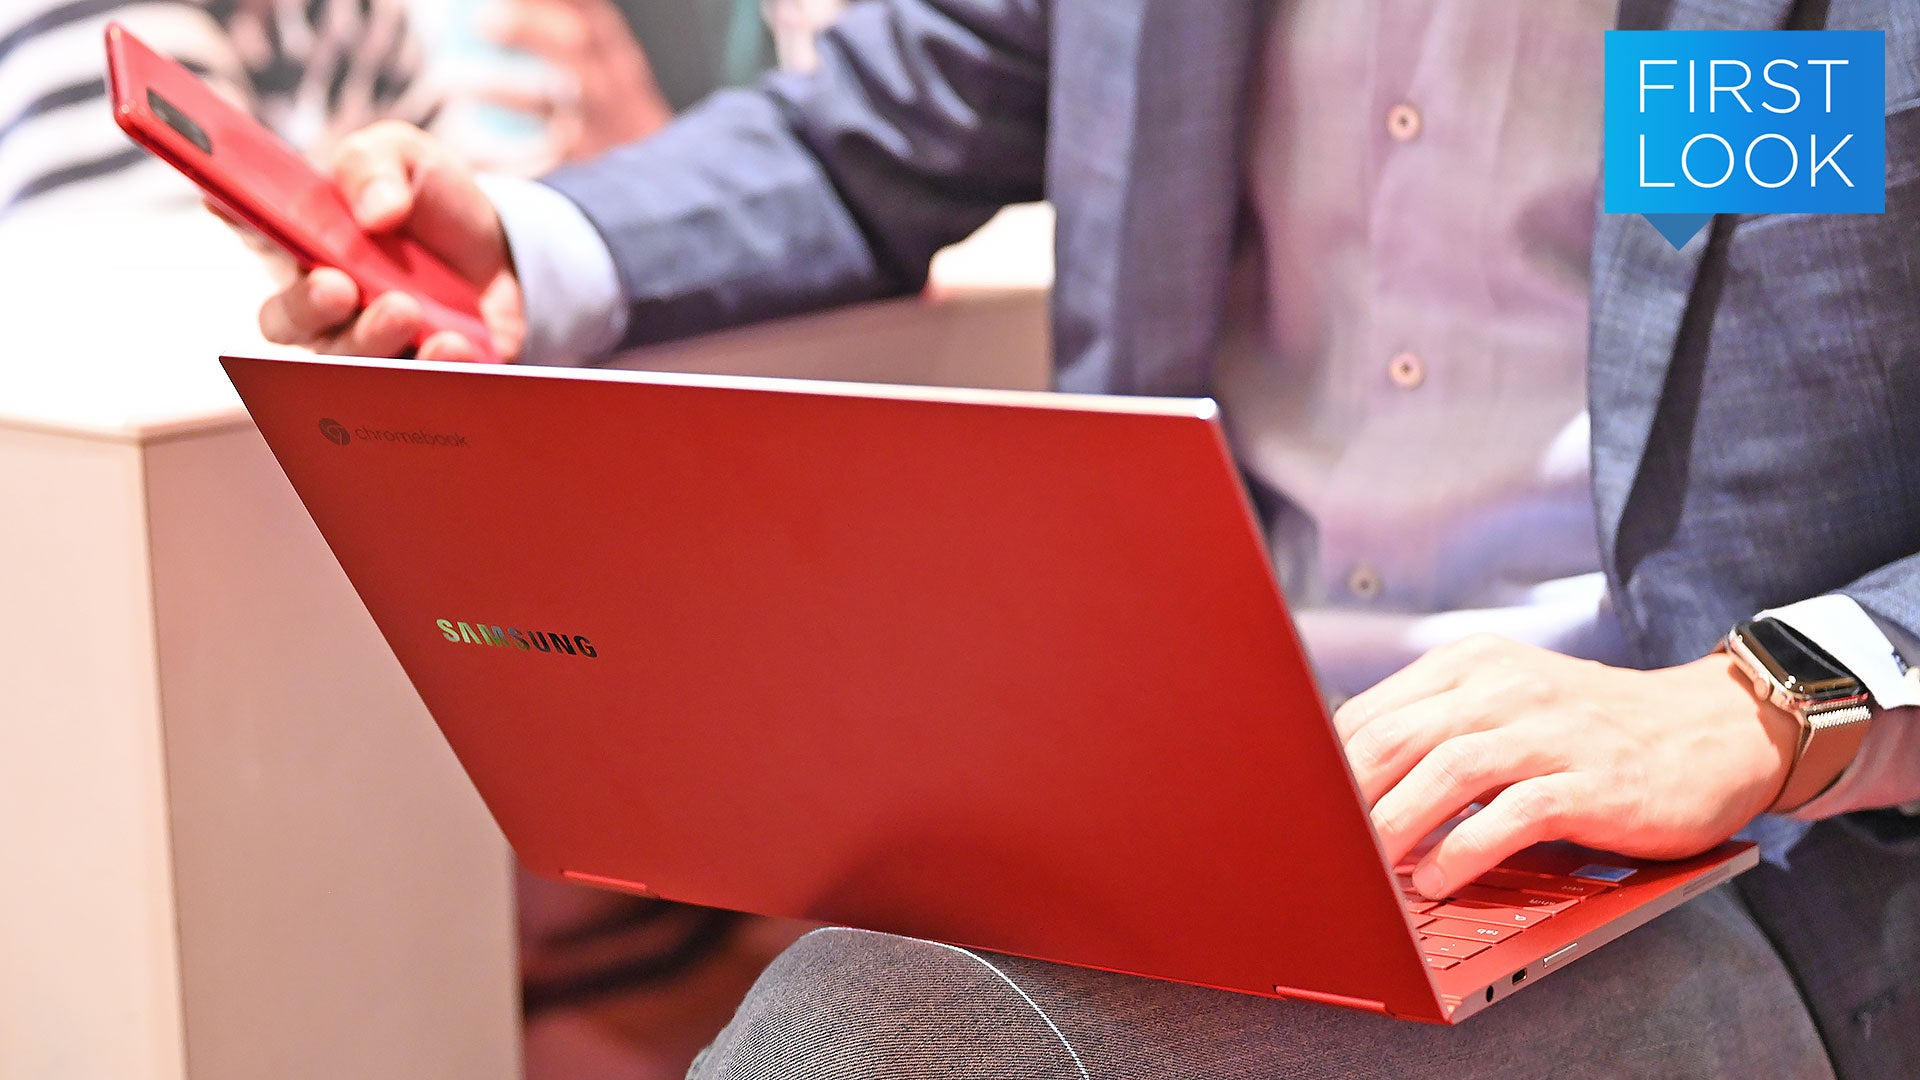 Samsung Might Have Just Made The Nicest Chromebook Ever